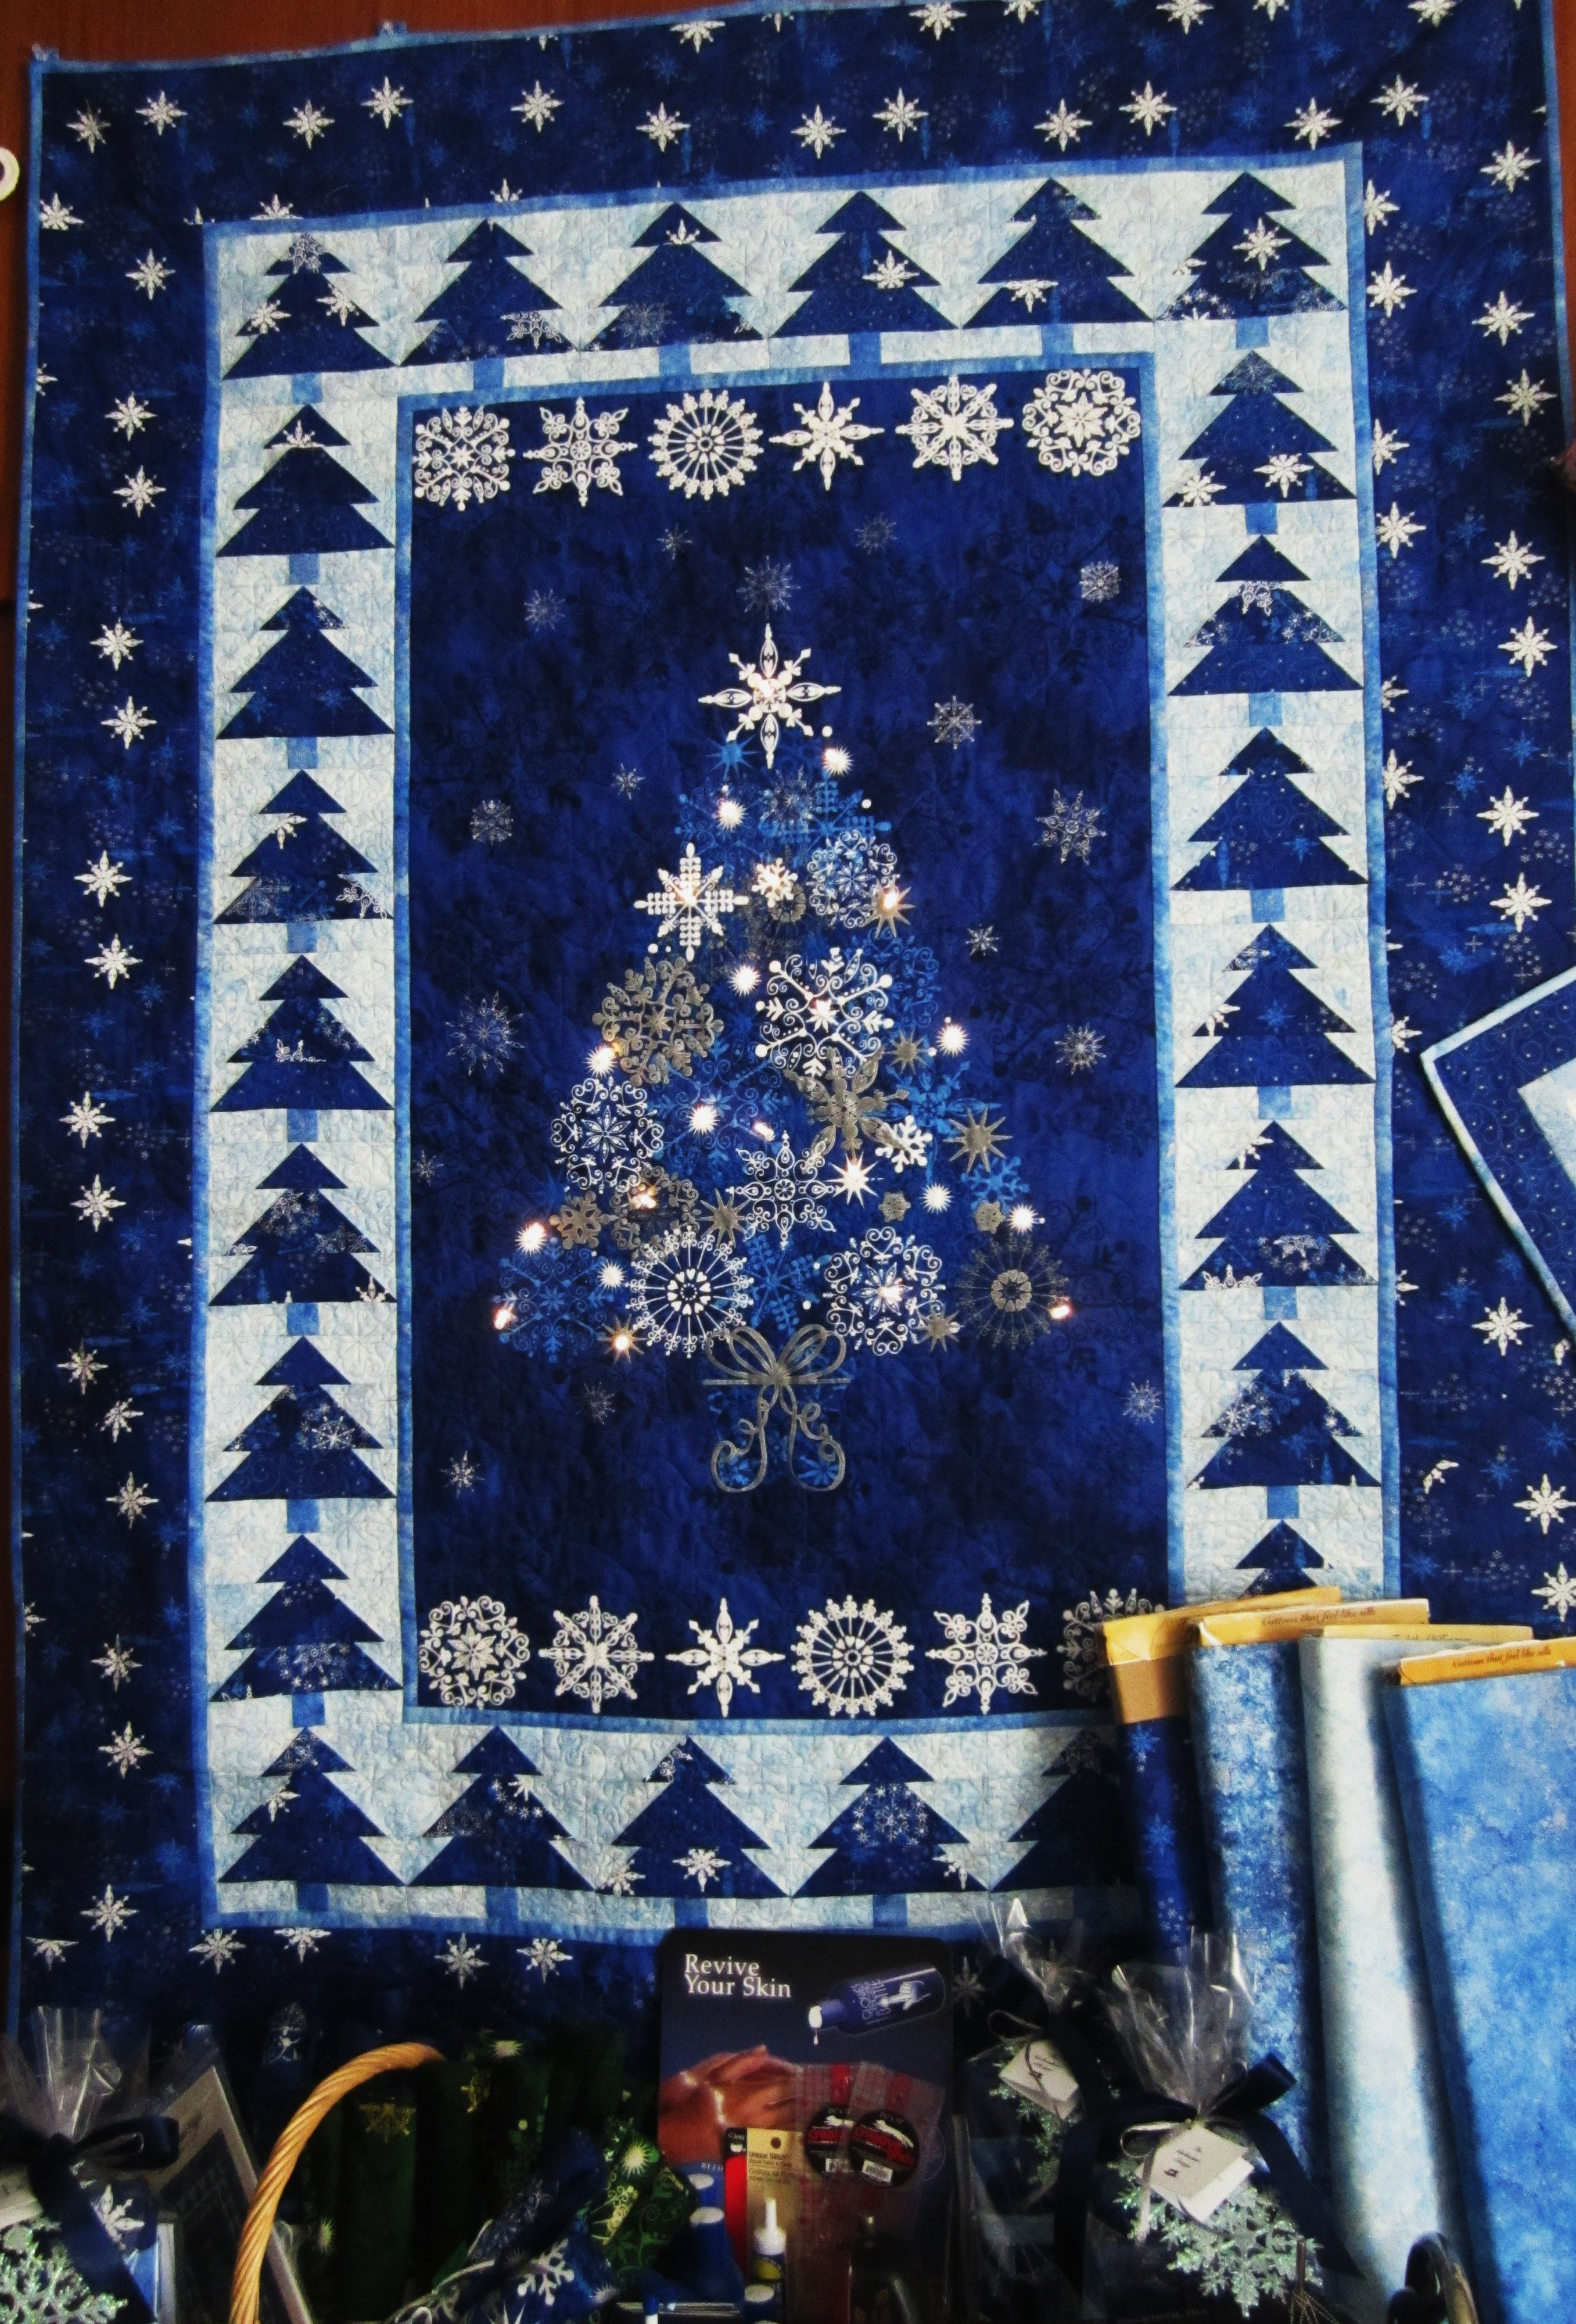 Northcott S Christmas Night Lighted Quilt Seen At The